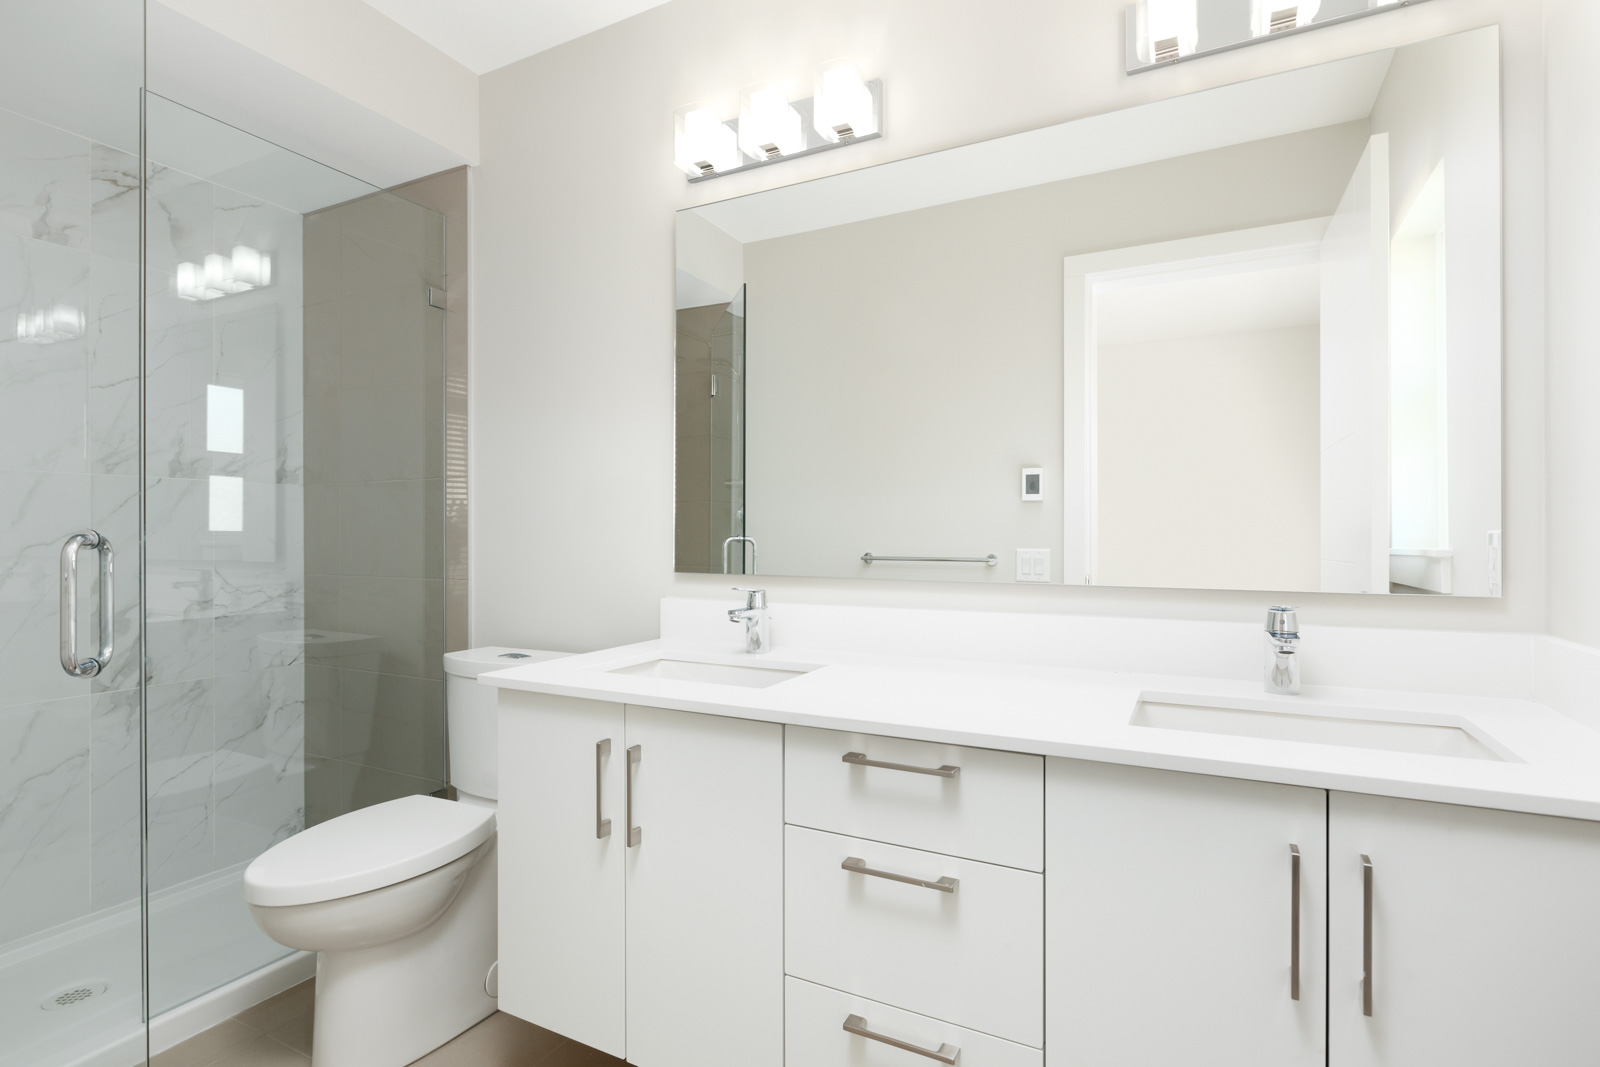 Bathroom inside Richmond luxury rental townhome.